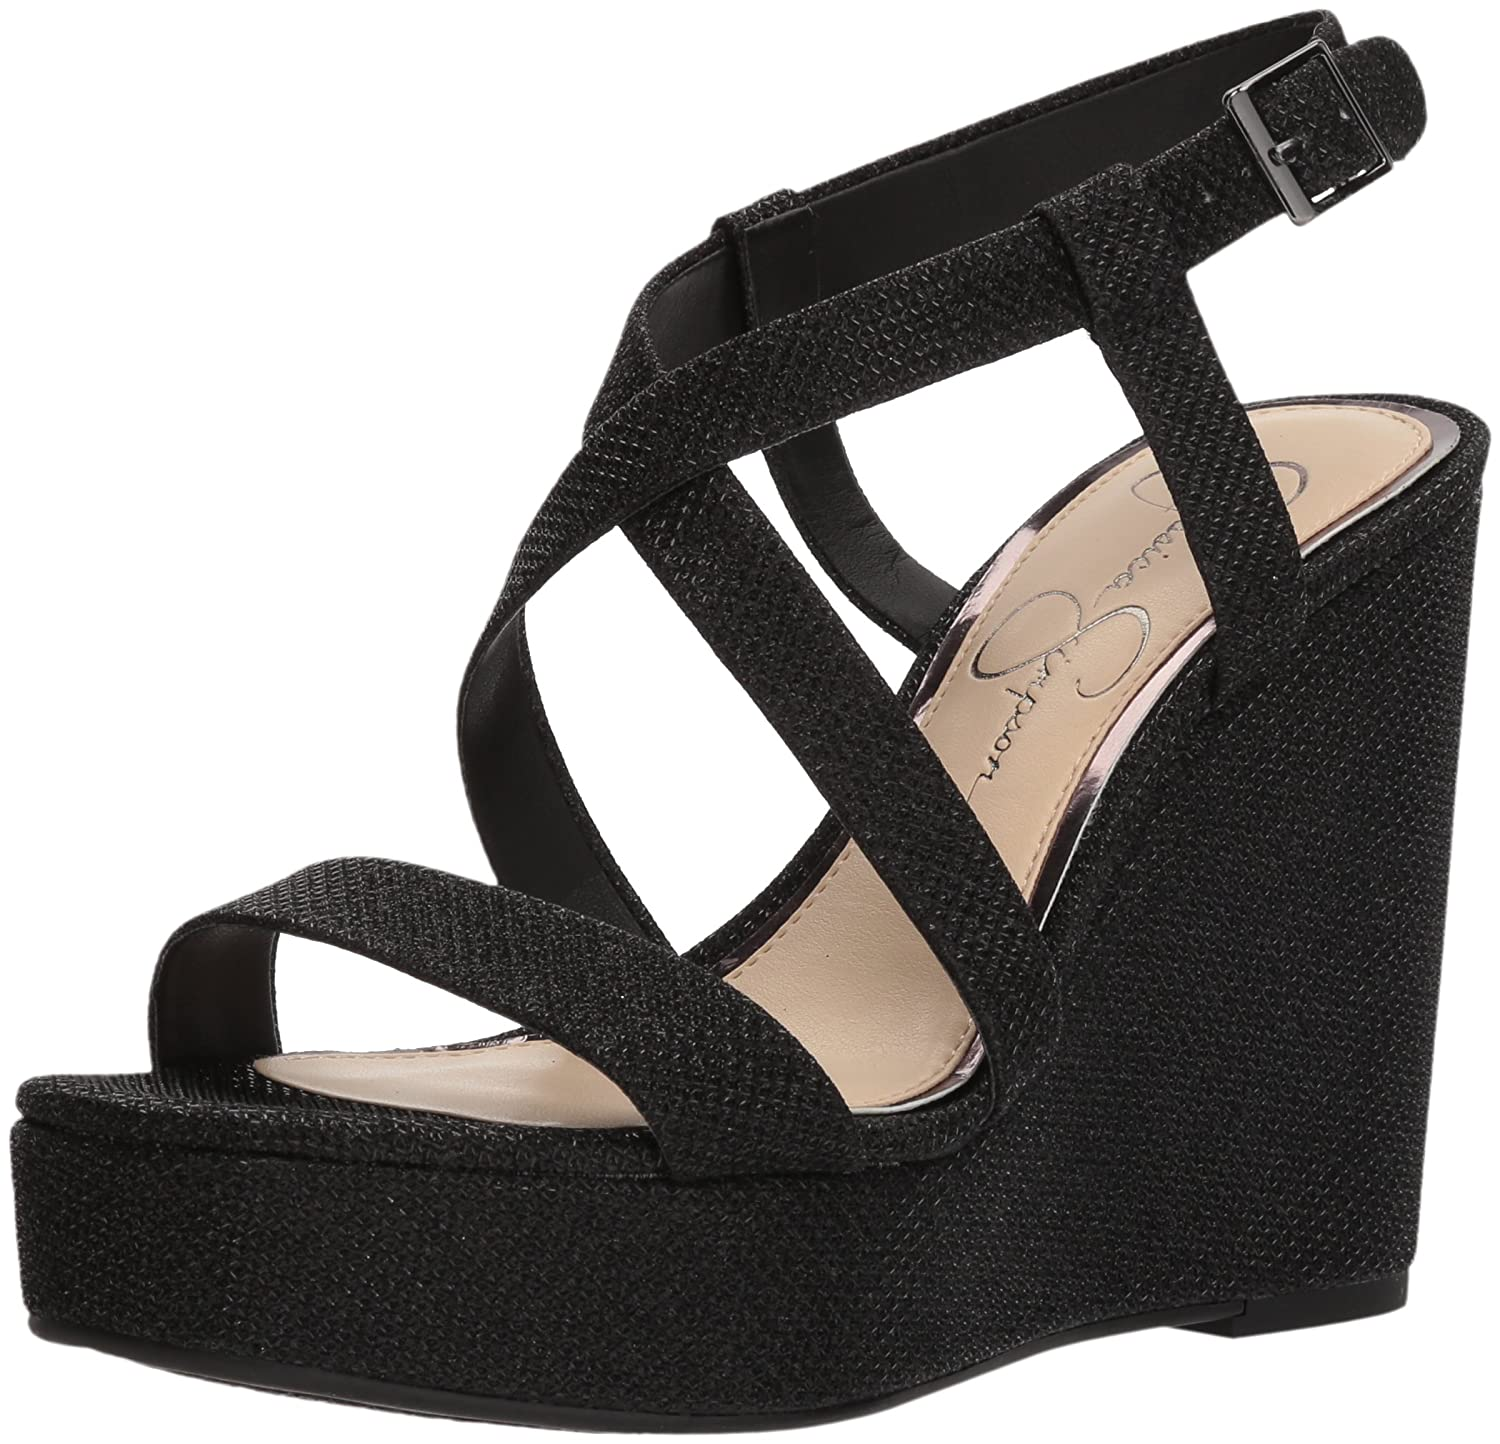 Jessica Simpson Women's Salona Wedge Sandal by Jessica+Simpson